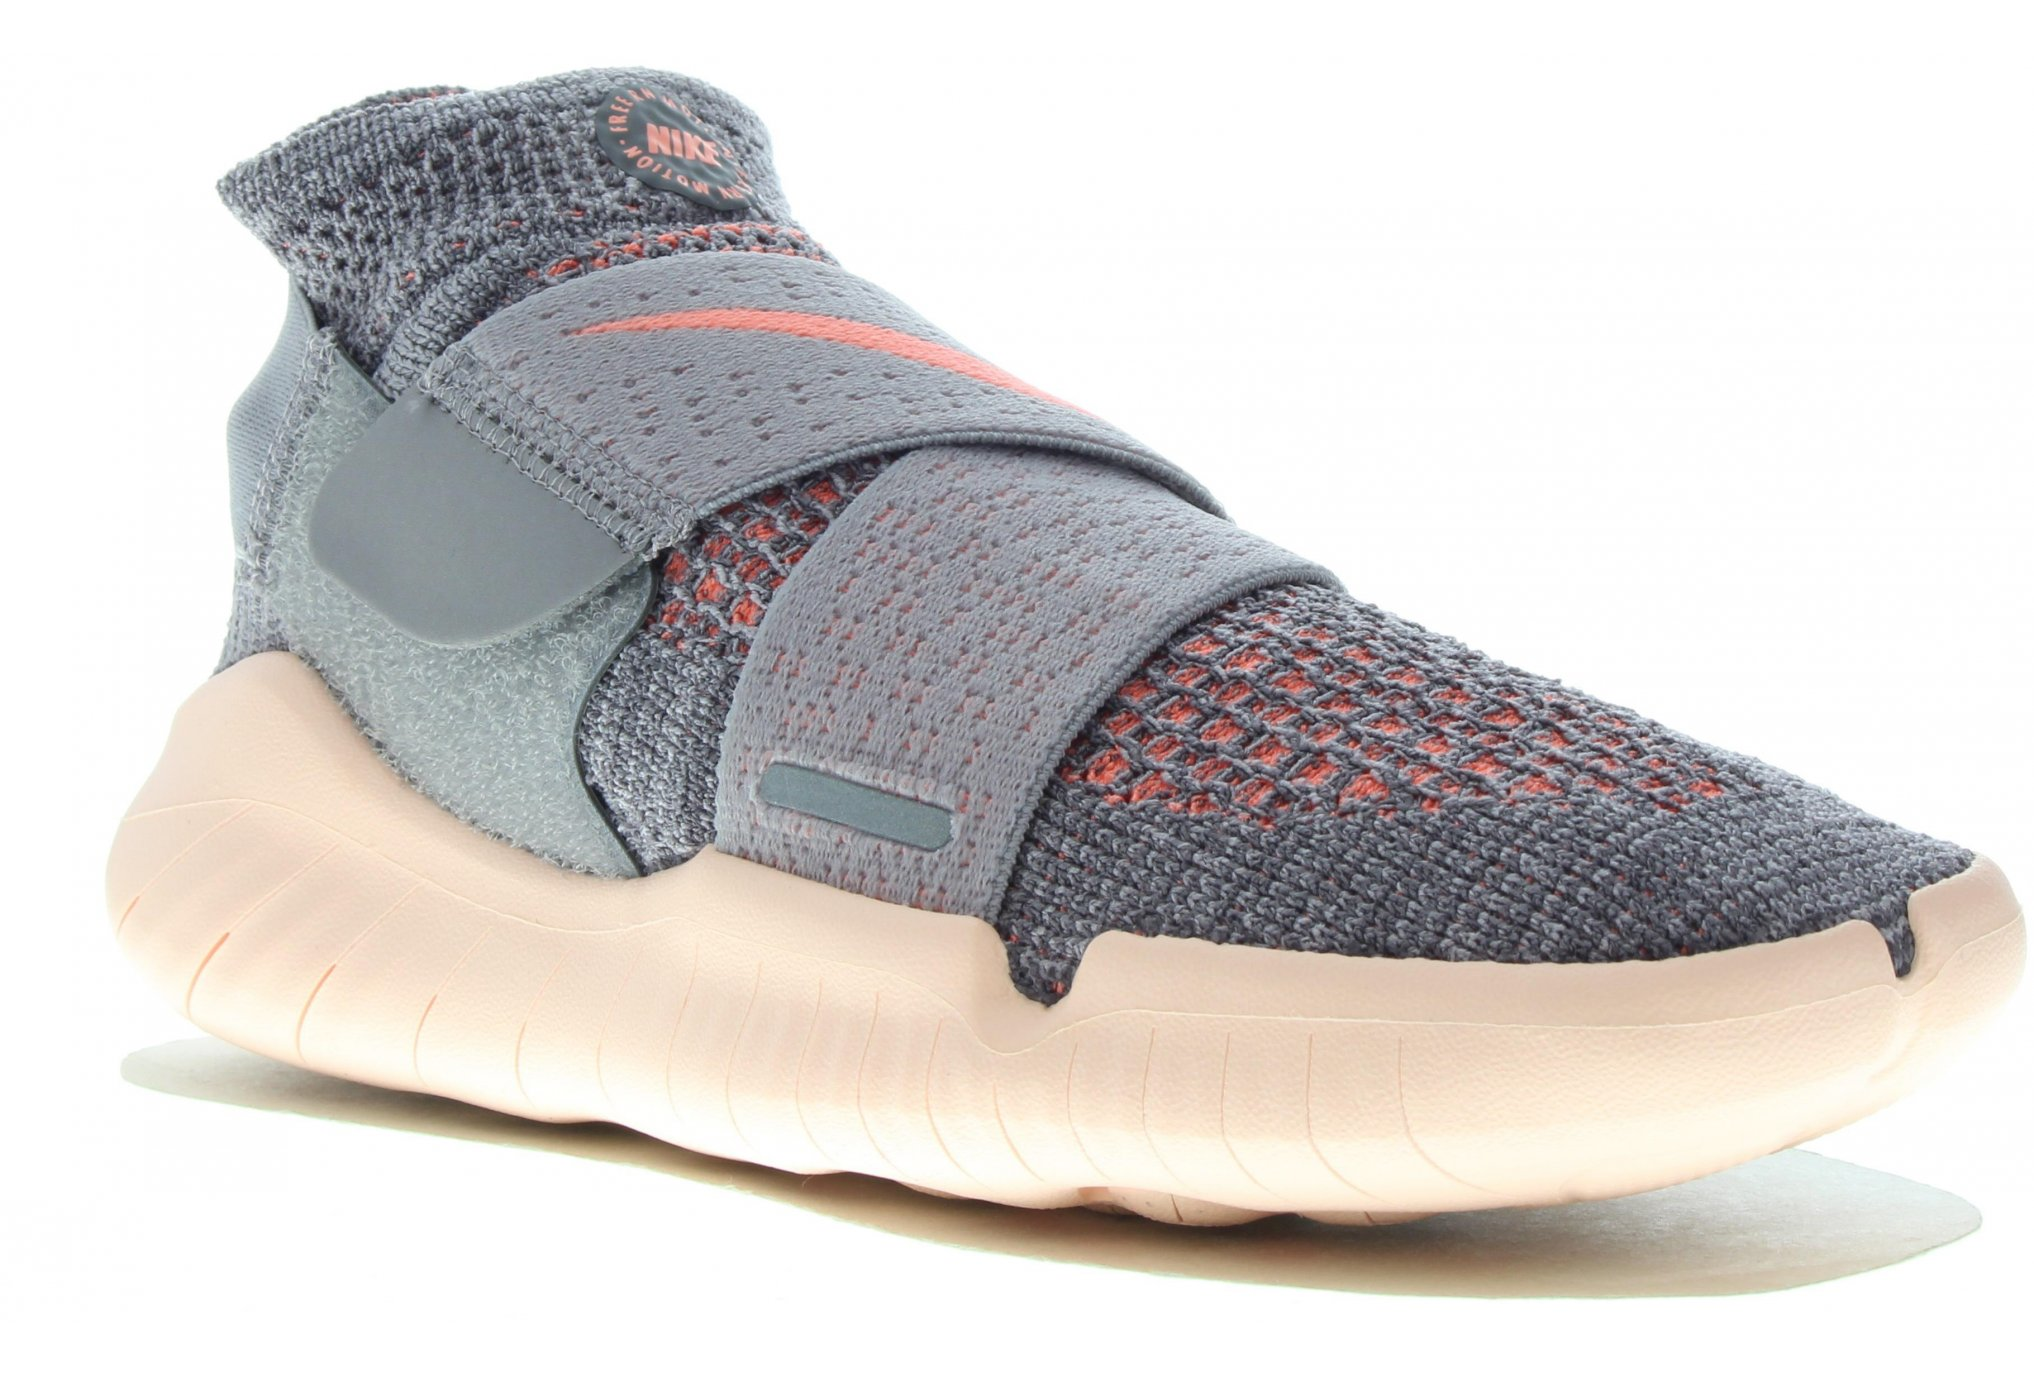 Nike Free RN Motion Flyknit 2018 Chaussures running femme